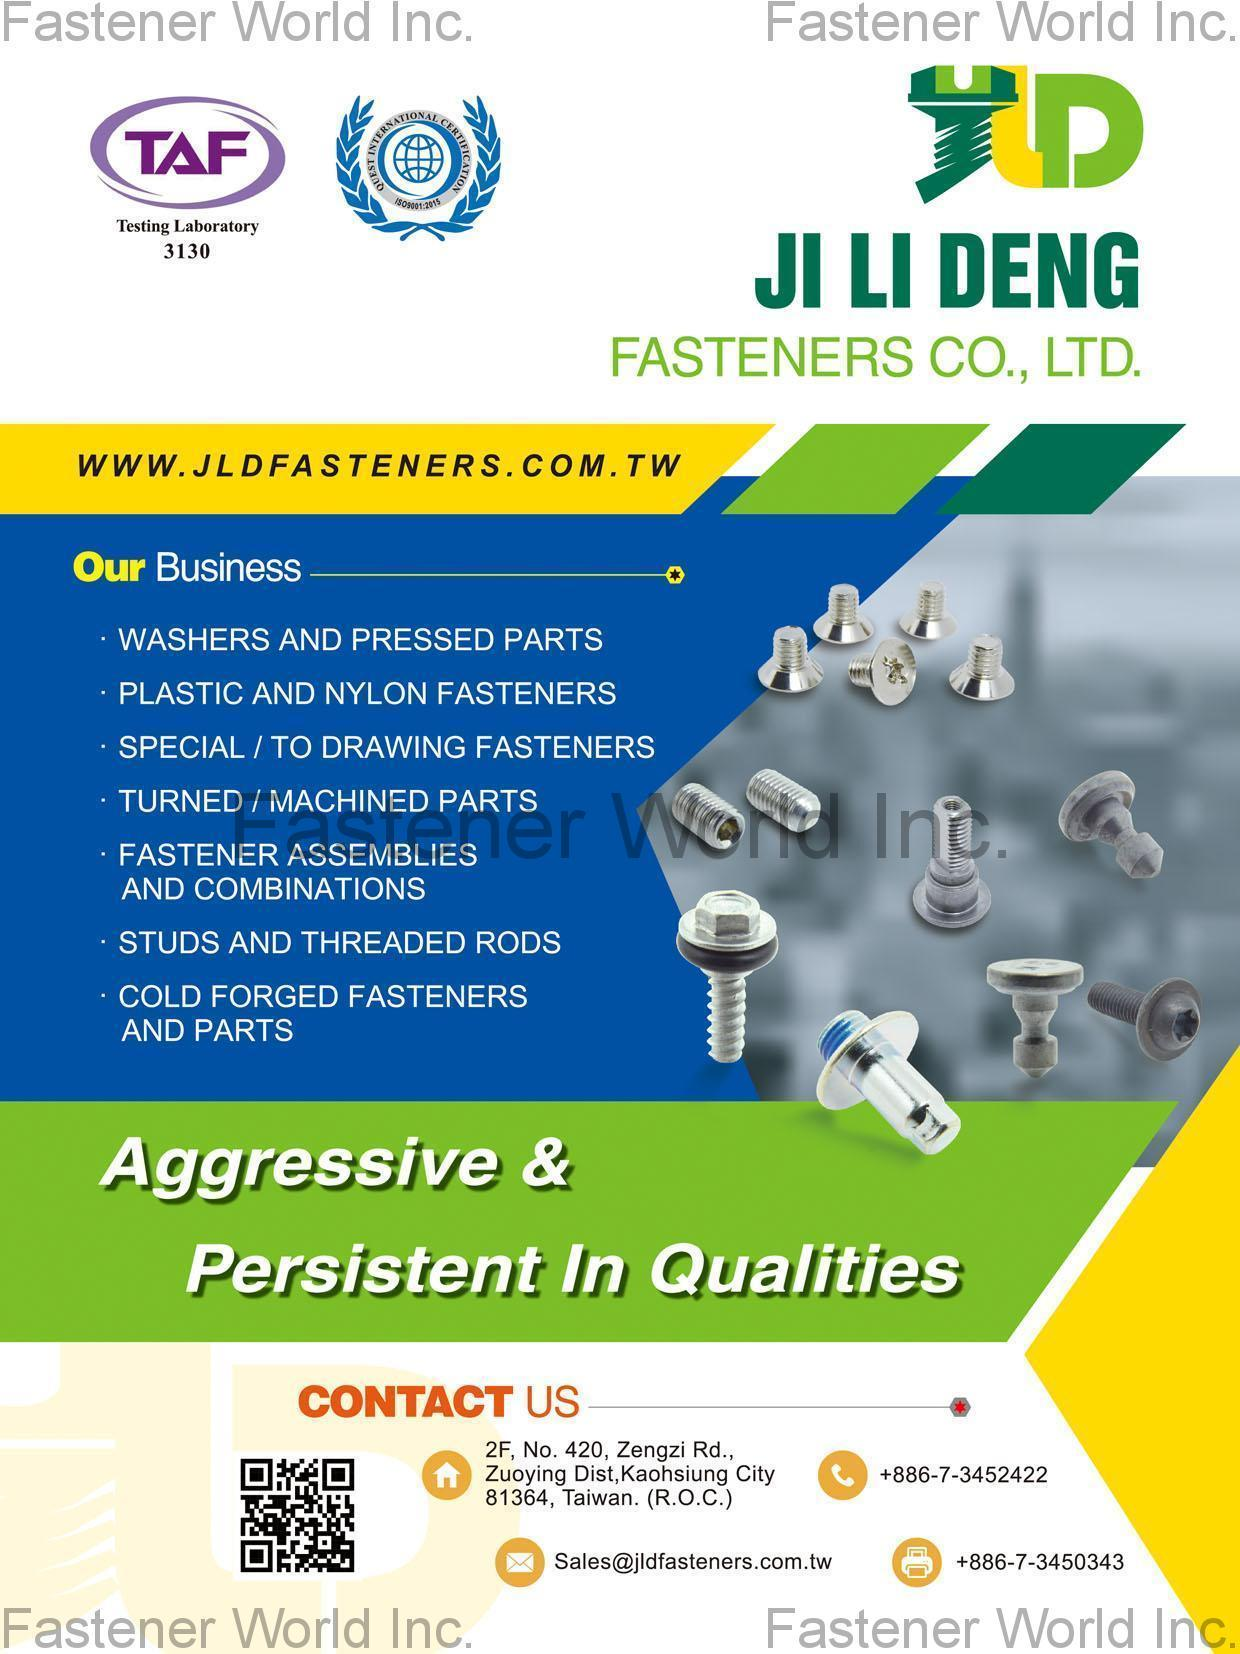 JI LI DENG FASTENERS CO., LTD.